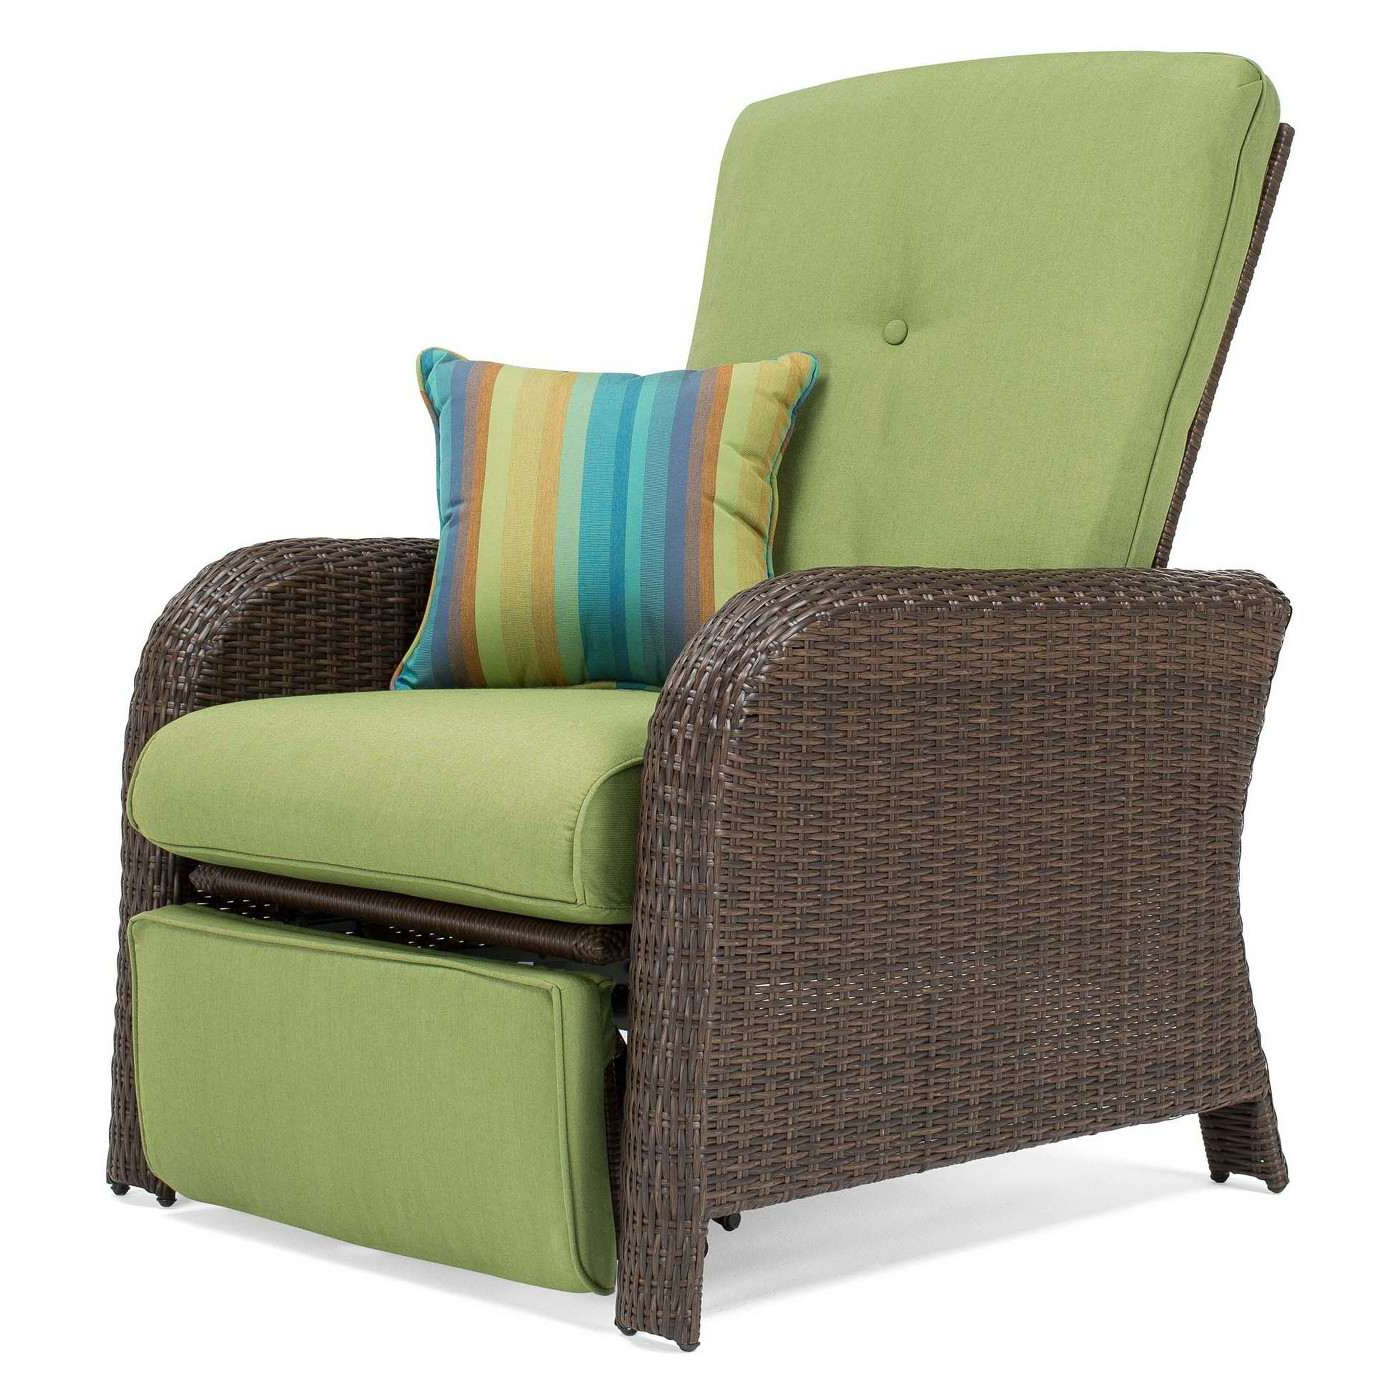 Outdoor Adjustable Rattan Wicker Recliner Chairs With Cushion Inside Most Current The 8 Best Outdoor Recliners Of (View 15 of 25)